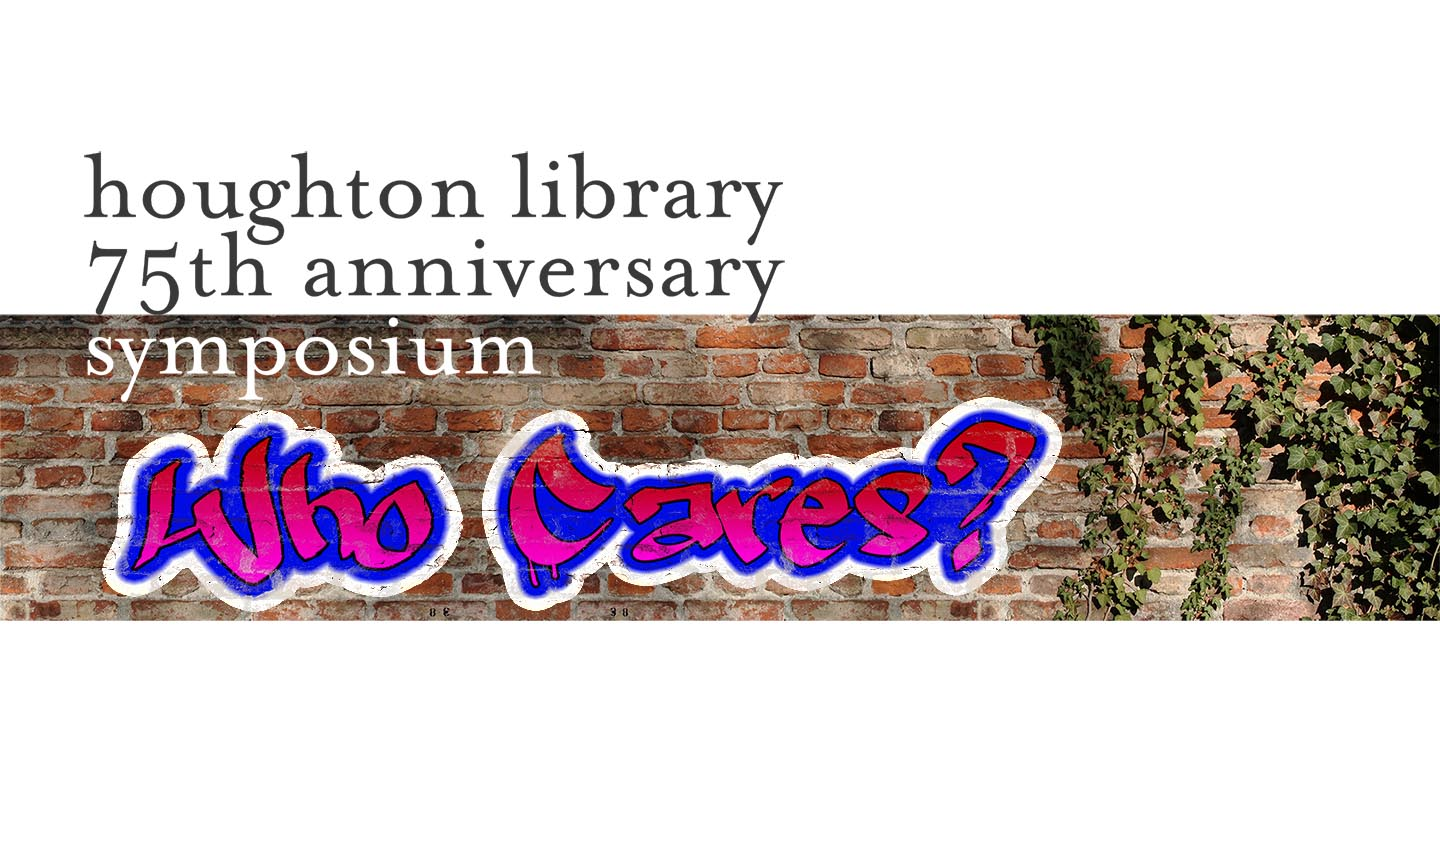 Houghton Library: Who Cares? A 75th Anniversary Symposium